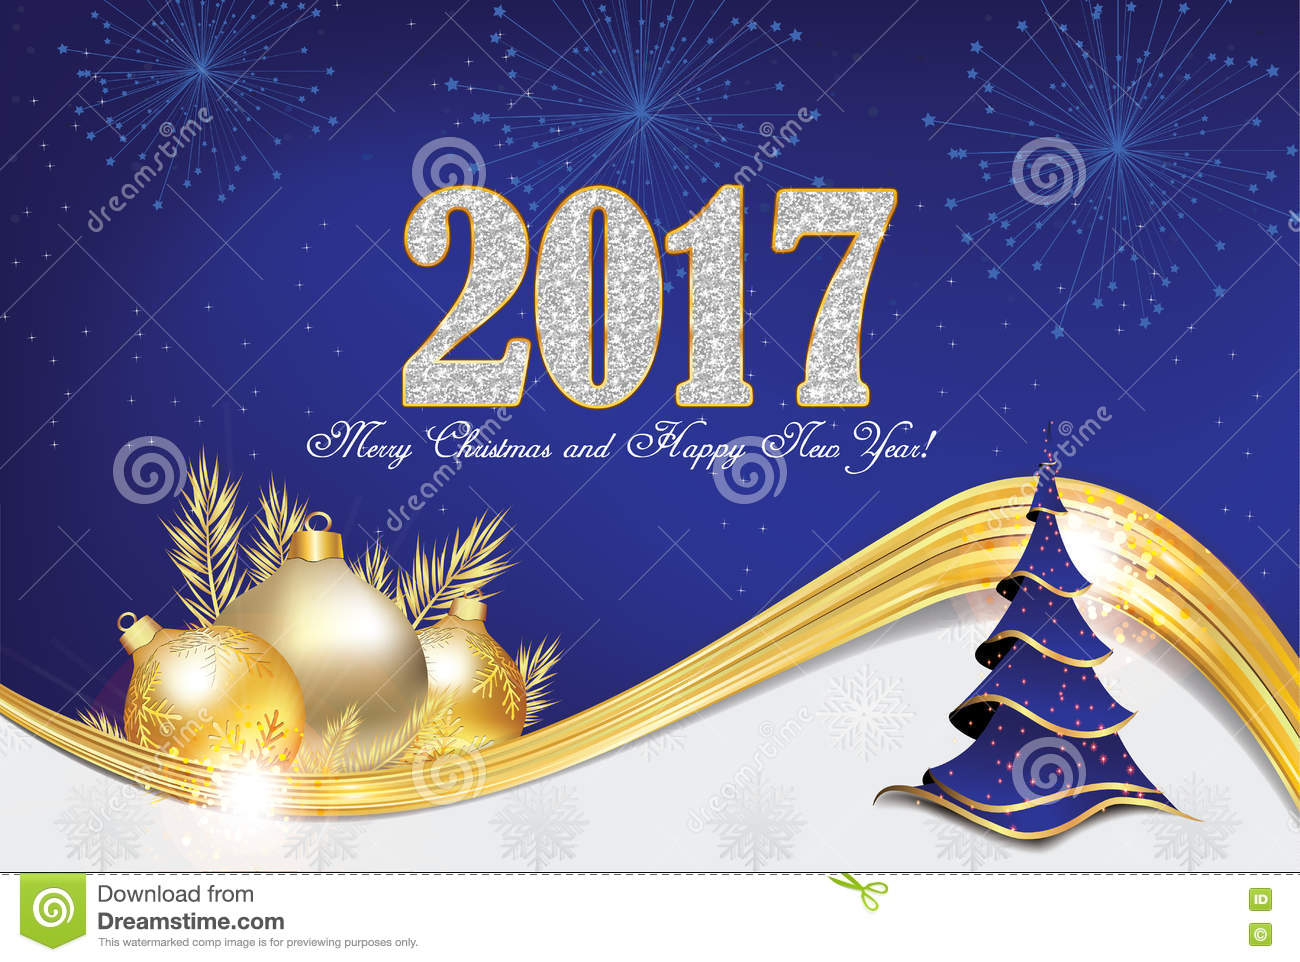 Christmas and new year greeting card 2017 stock photo 78623311 christmas and new year greeting card 2017 stock photo 78623311 megapixl kristyandbryce Image collections